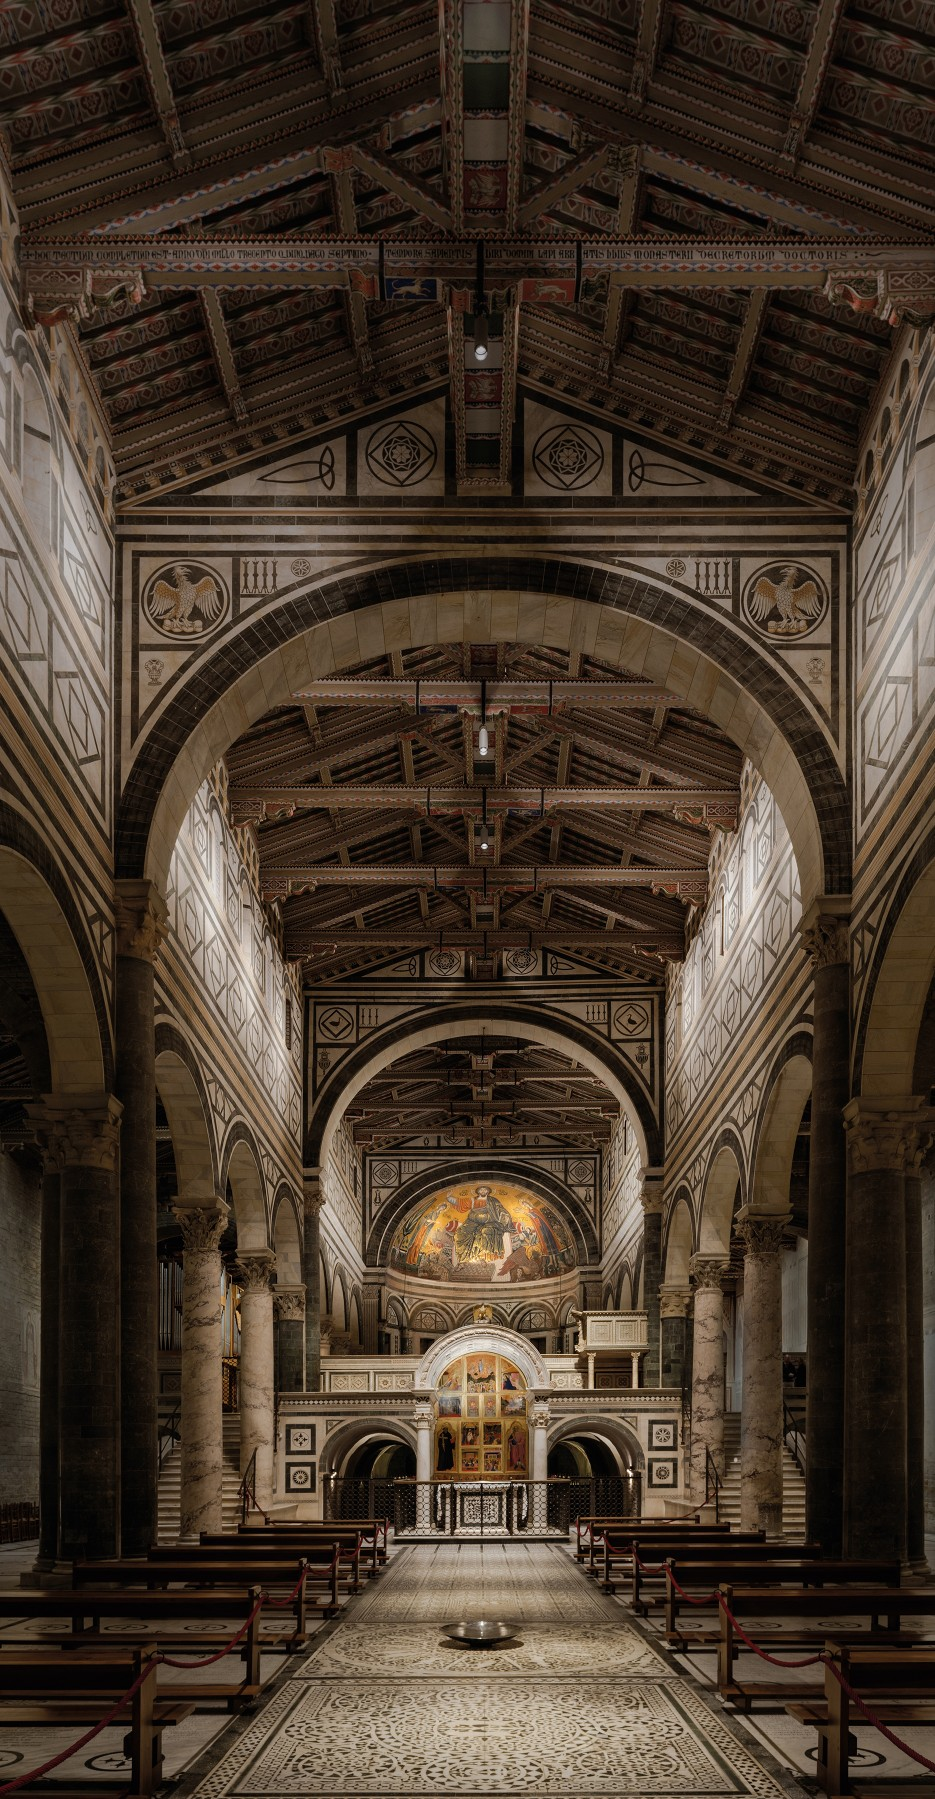 Lumeniris luminaires were used to light the main areas of the church, as well as to highlight the ceiling and the main aisles.  – Matteo Bencini - Matteo Trentanove